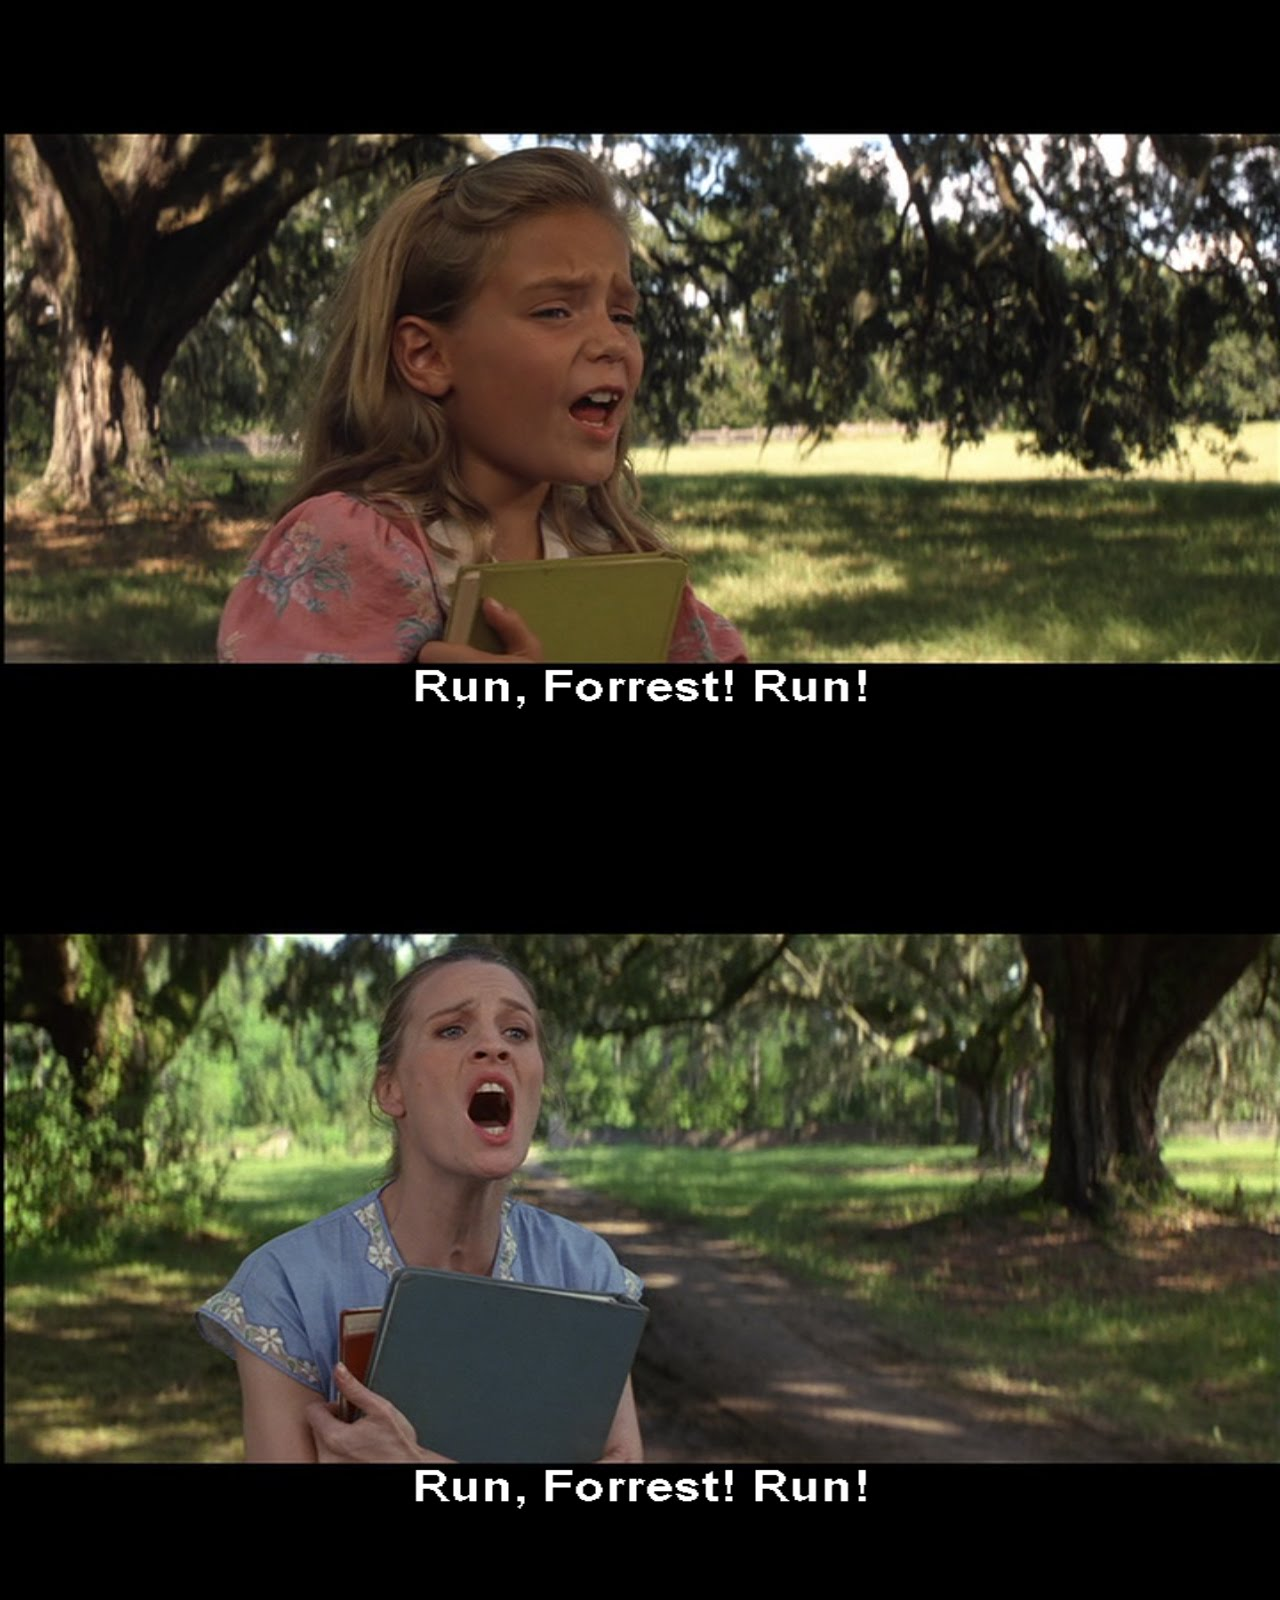 the morality of forrest gump View essay - a psychological analysis of forrest gump from psych 110 at  it  was a period of time where questions of morality and equality had come to the.